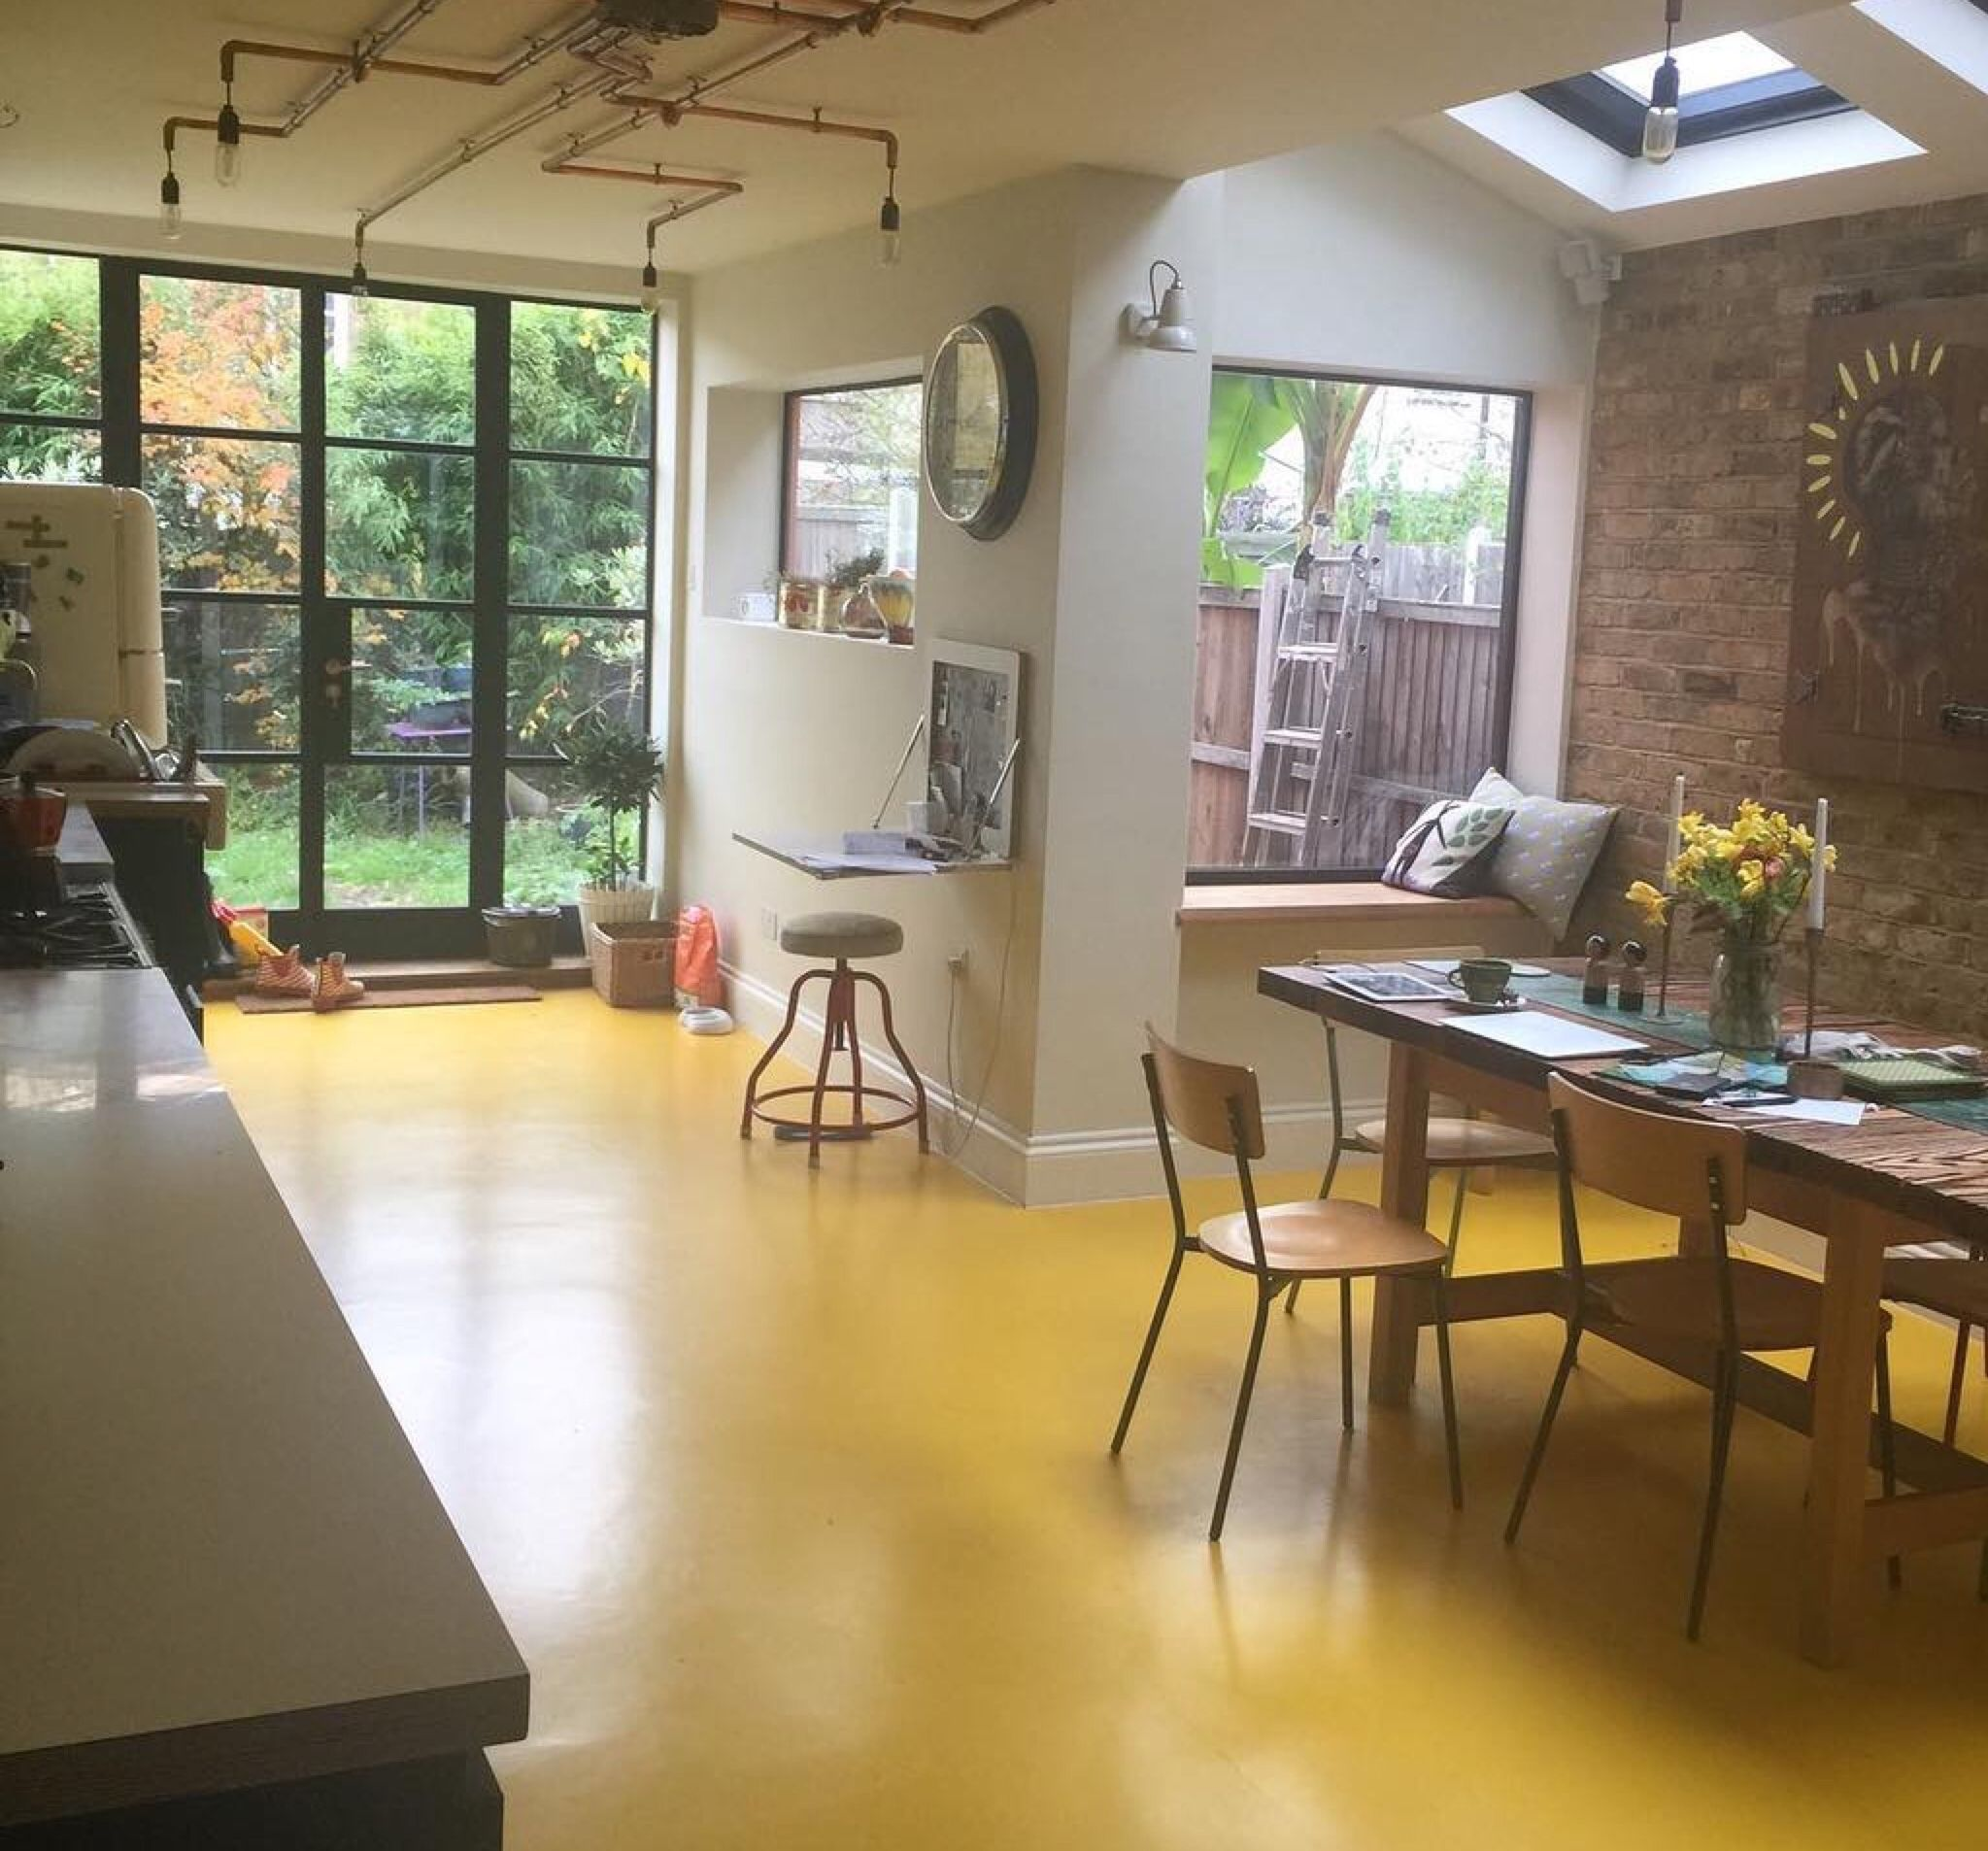 Springfield Yellow Rubber Looking Great In This Amazing Kitchen Diner Untillemonsrsweet Rubber Flooring Kitchen Rubber Flooring White Modern Kitchen